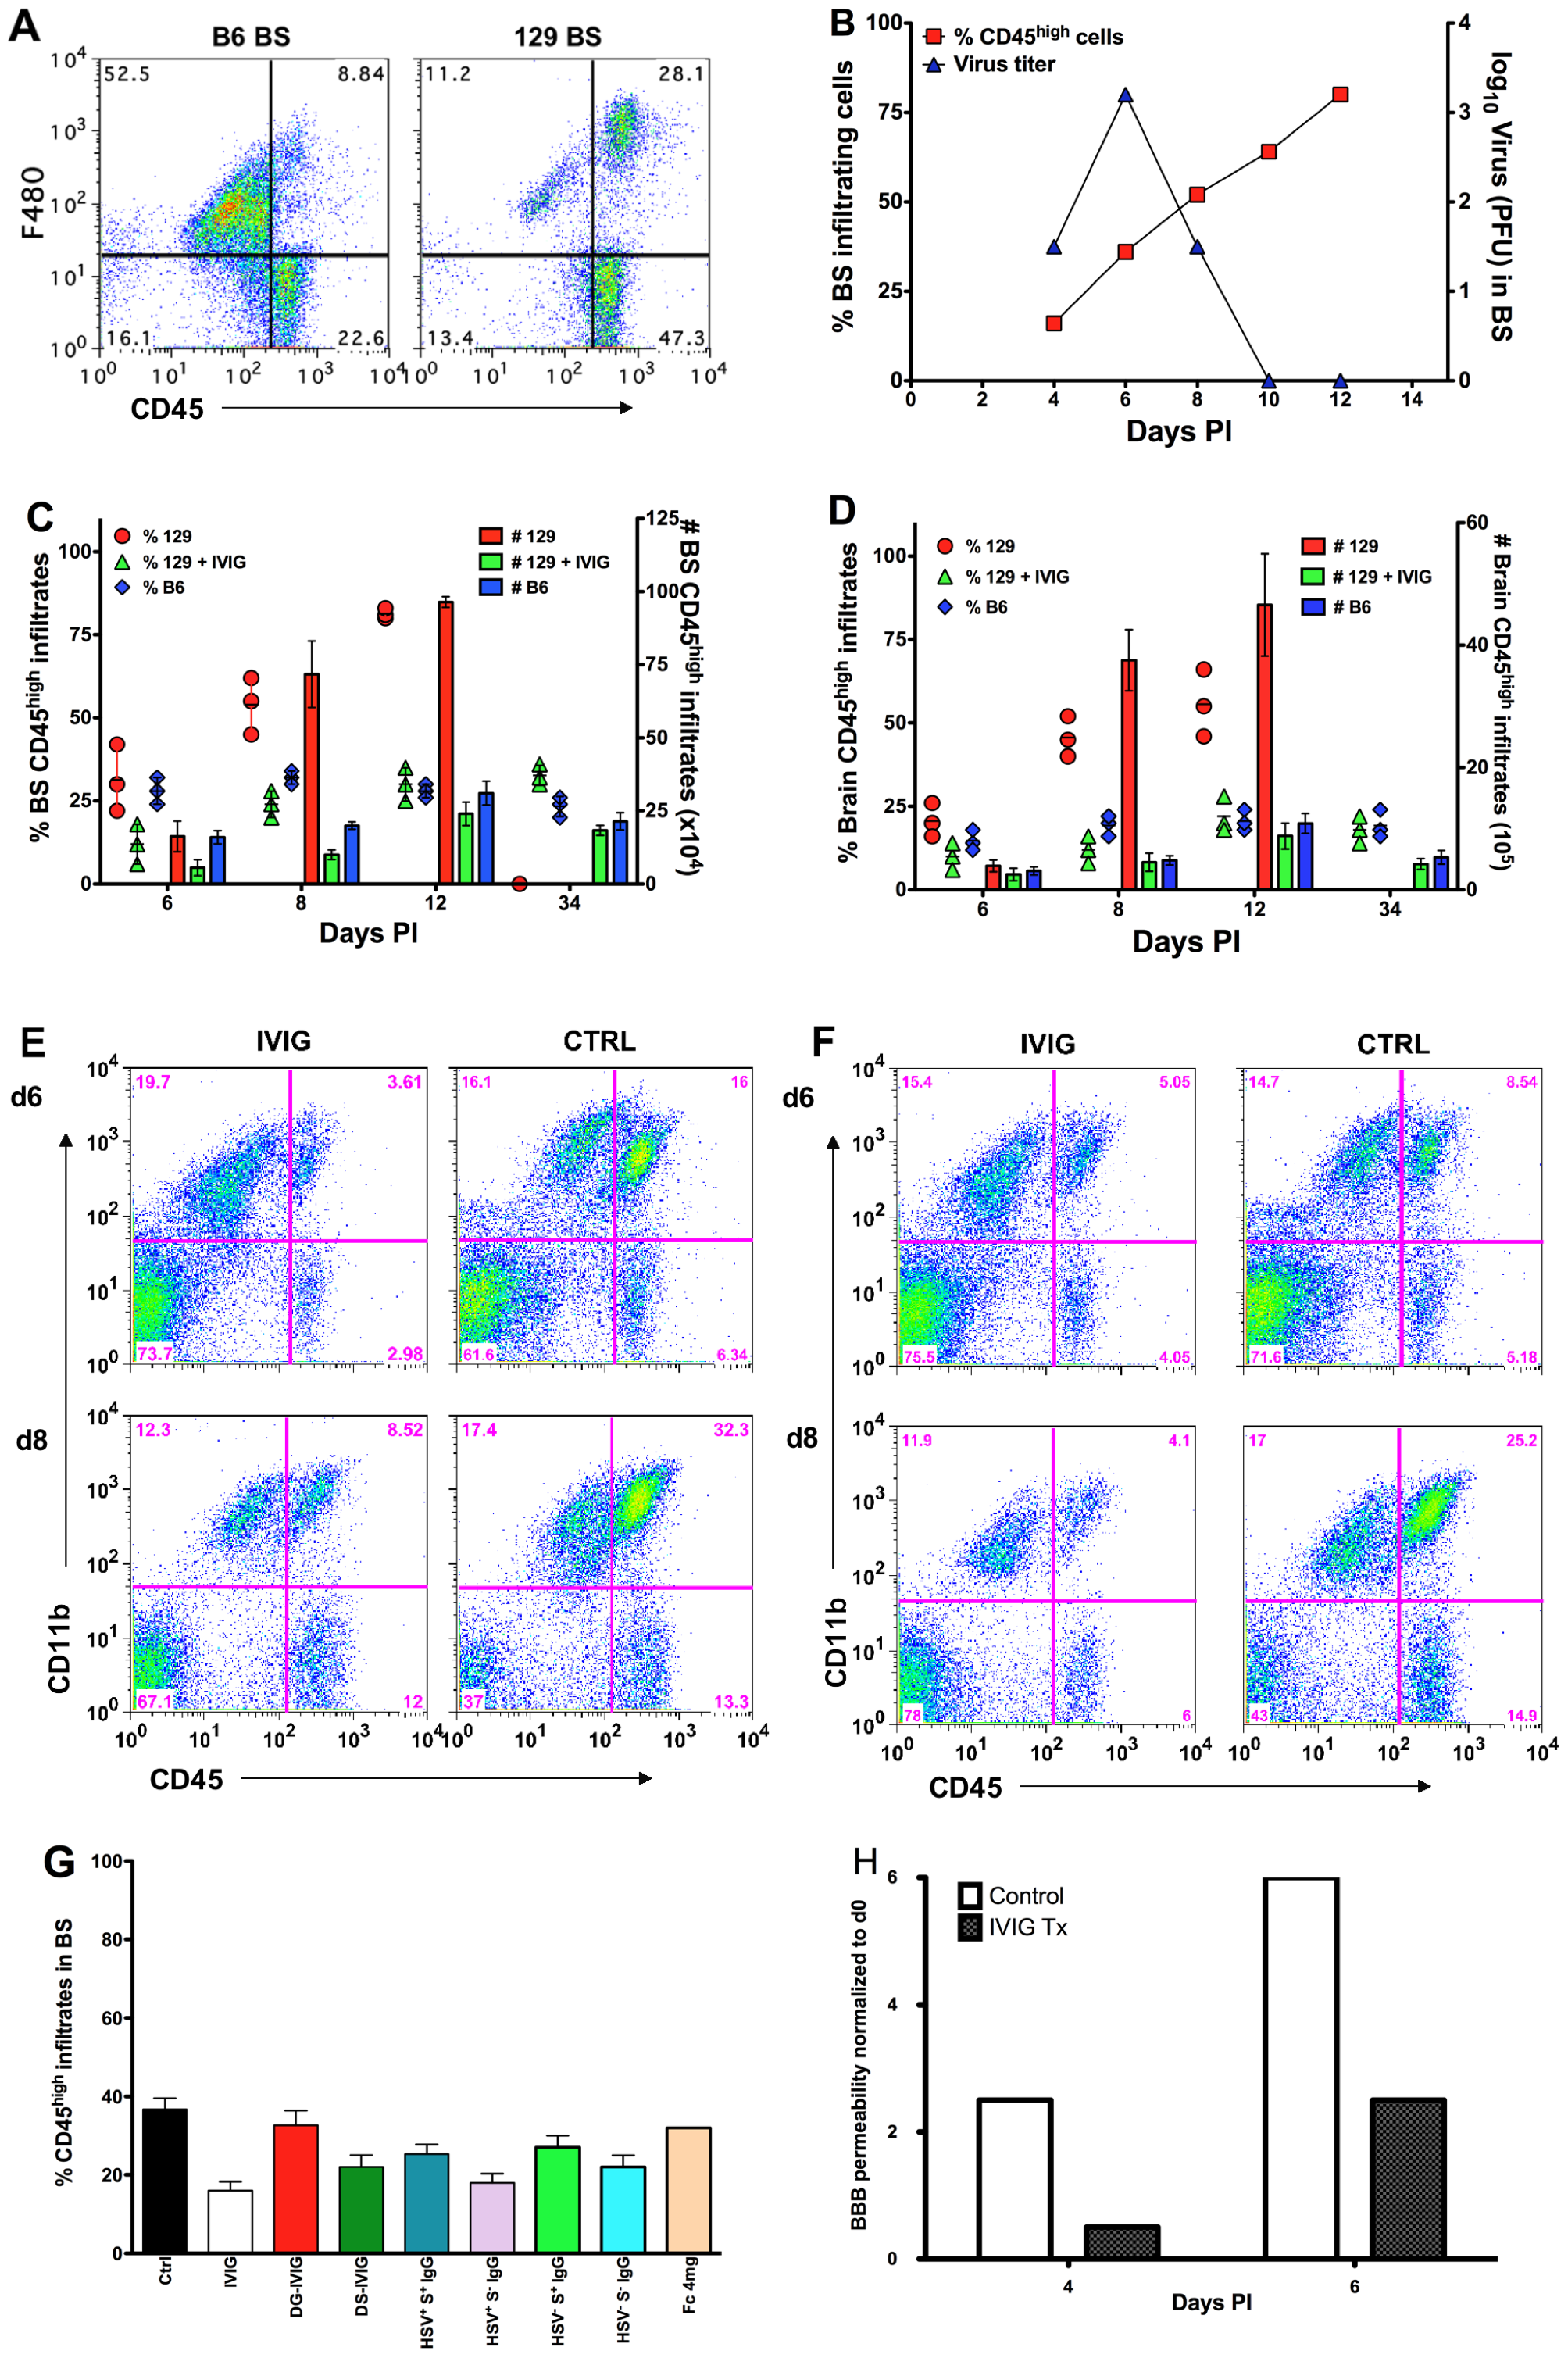 IVIG inhibits CNS inflammation in HSV infected mice.